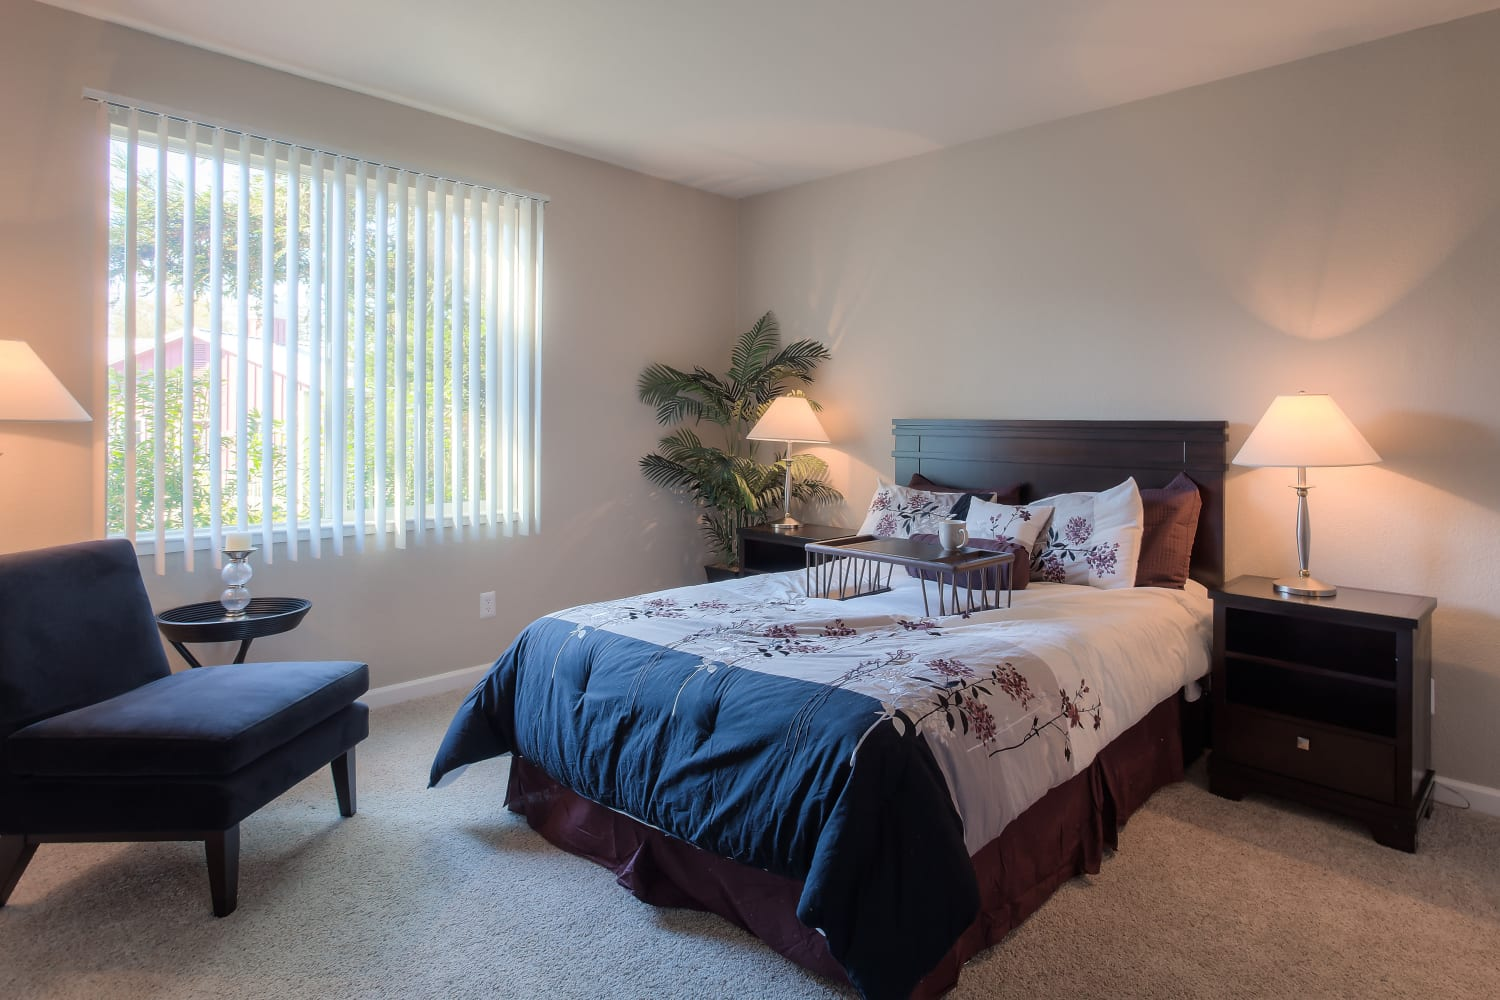 Cotton Wood Apartments in Dublin, California, offer spacious bedrooms